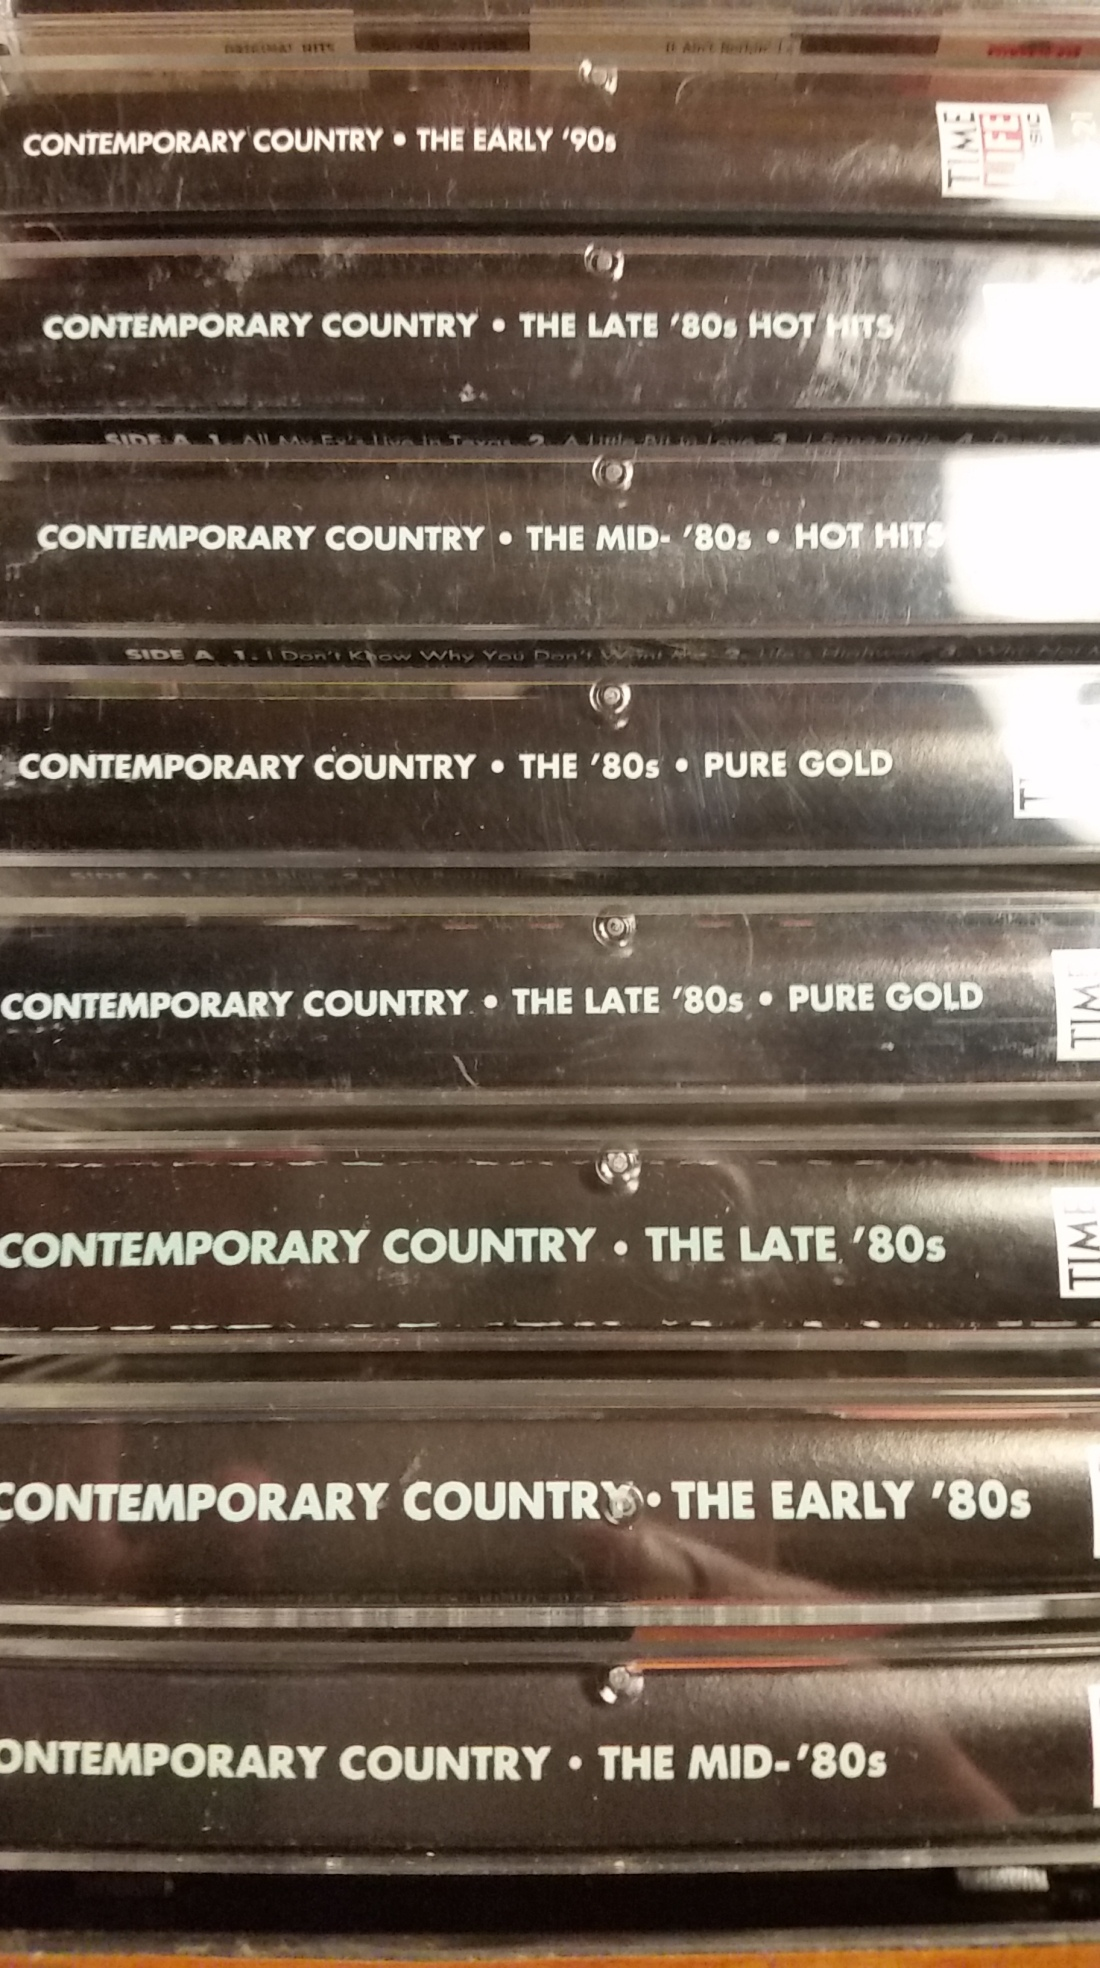 Timelife contemporary country cassettes